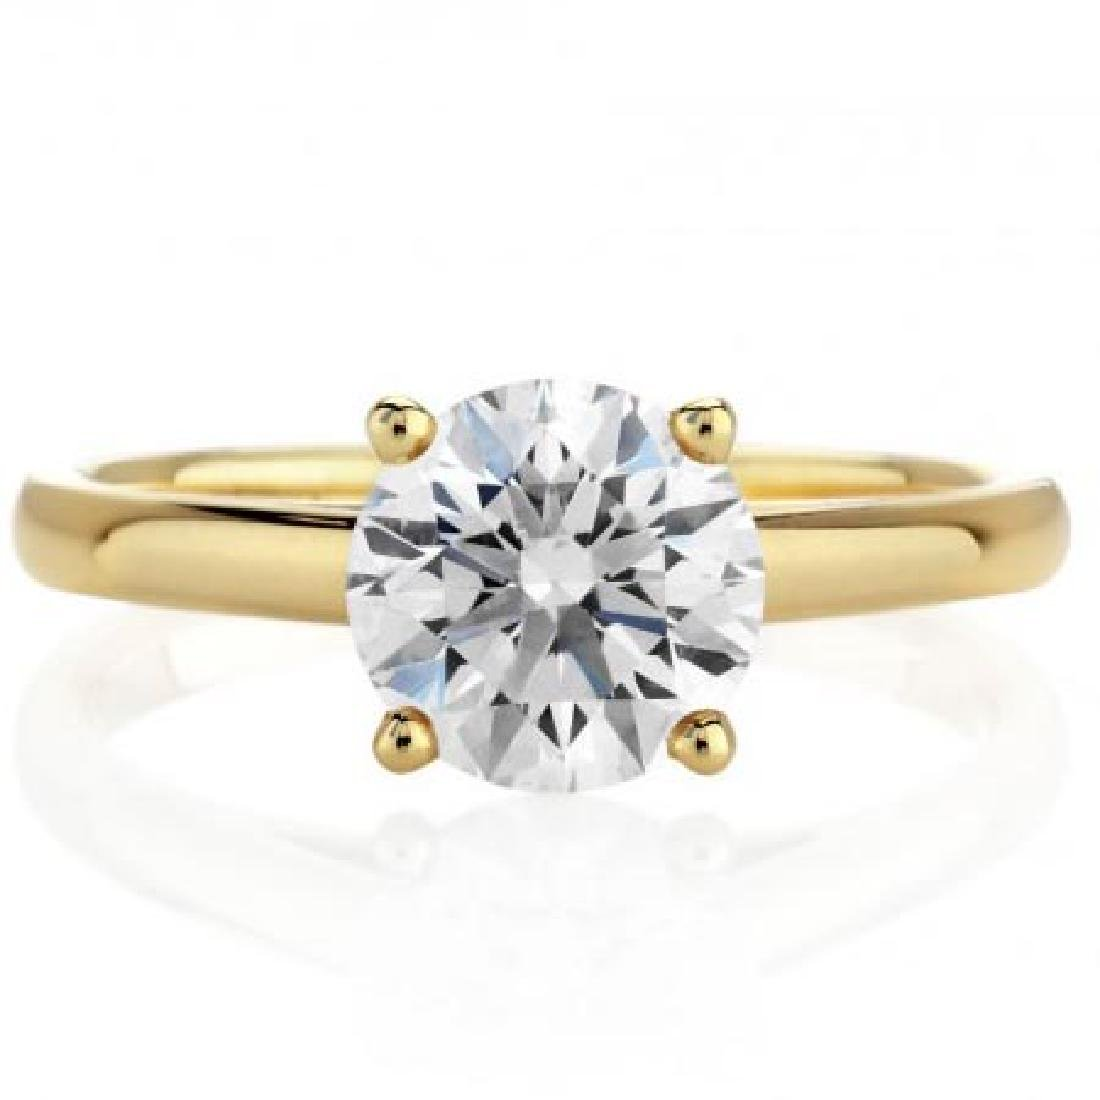 CERTIFIED 1.02 CTW ROUND D/VVS2 SOLITAIRE RING IN 14K Y